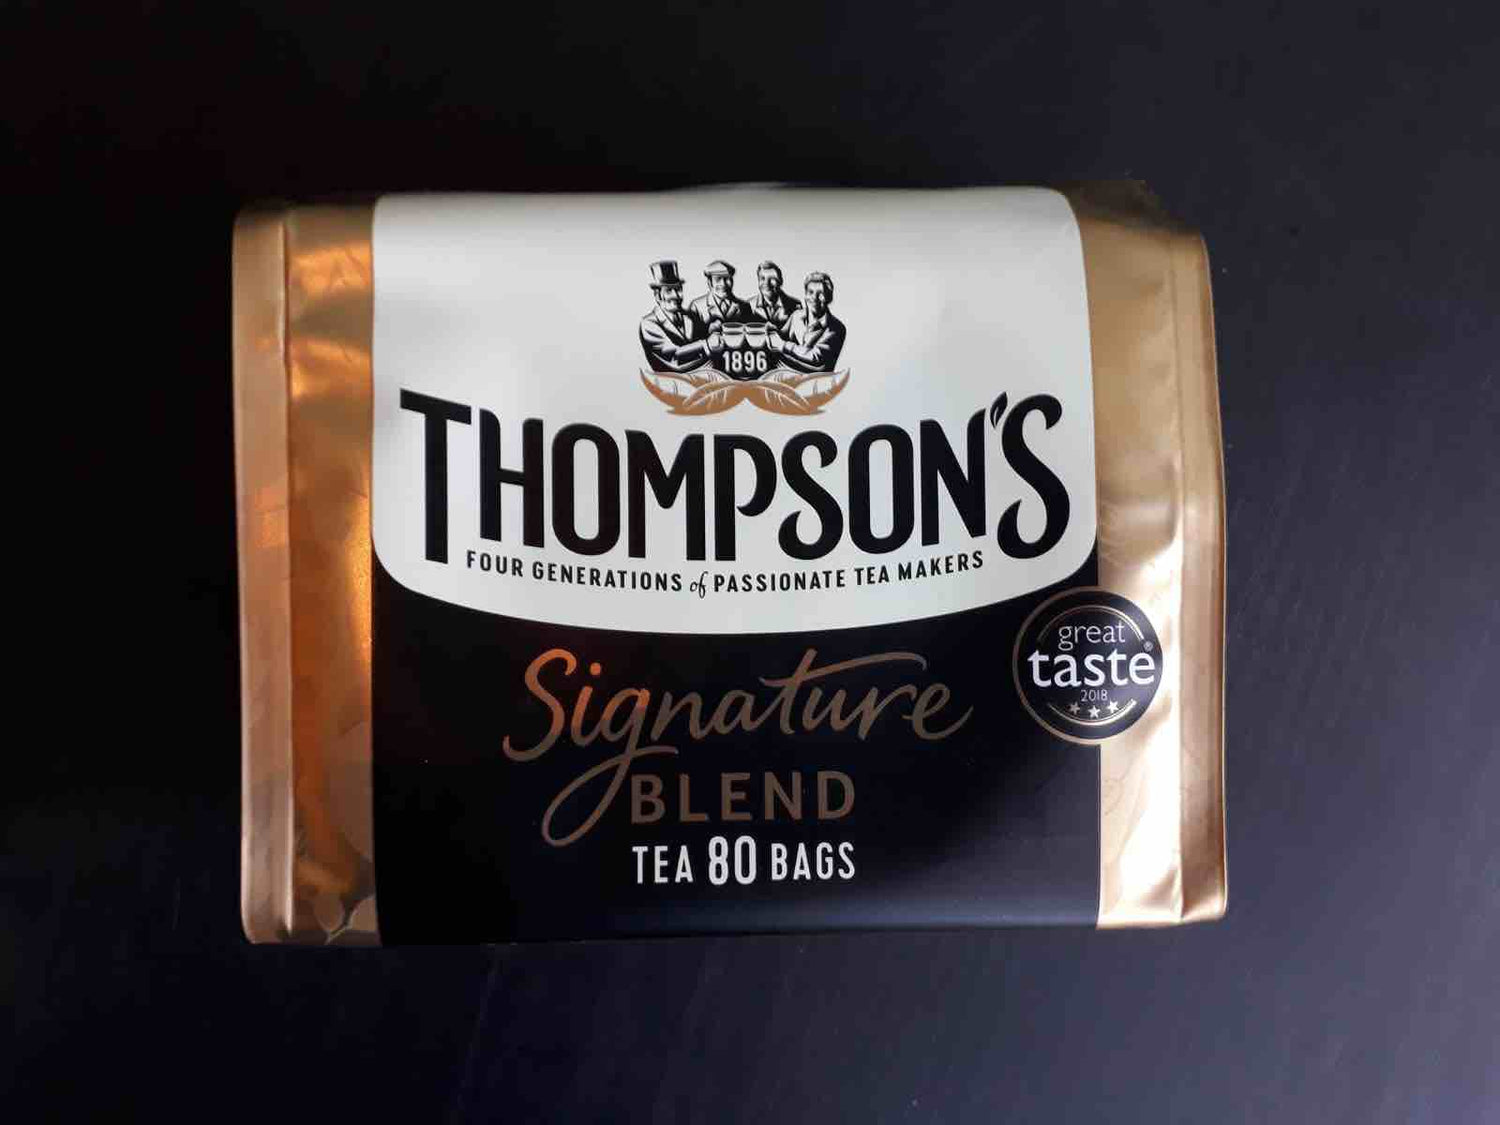 Thompsons Signature Blend Tea